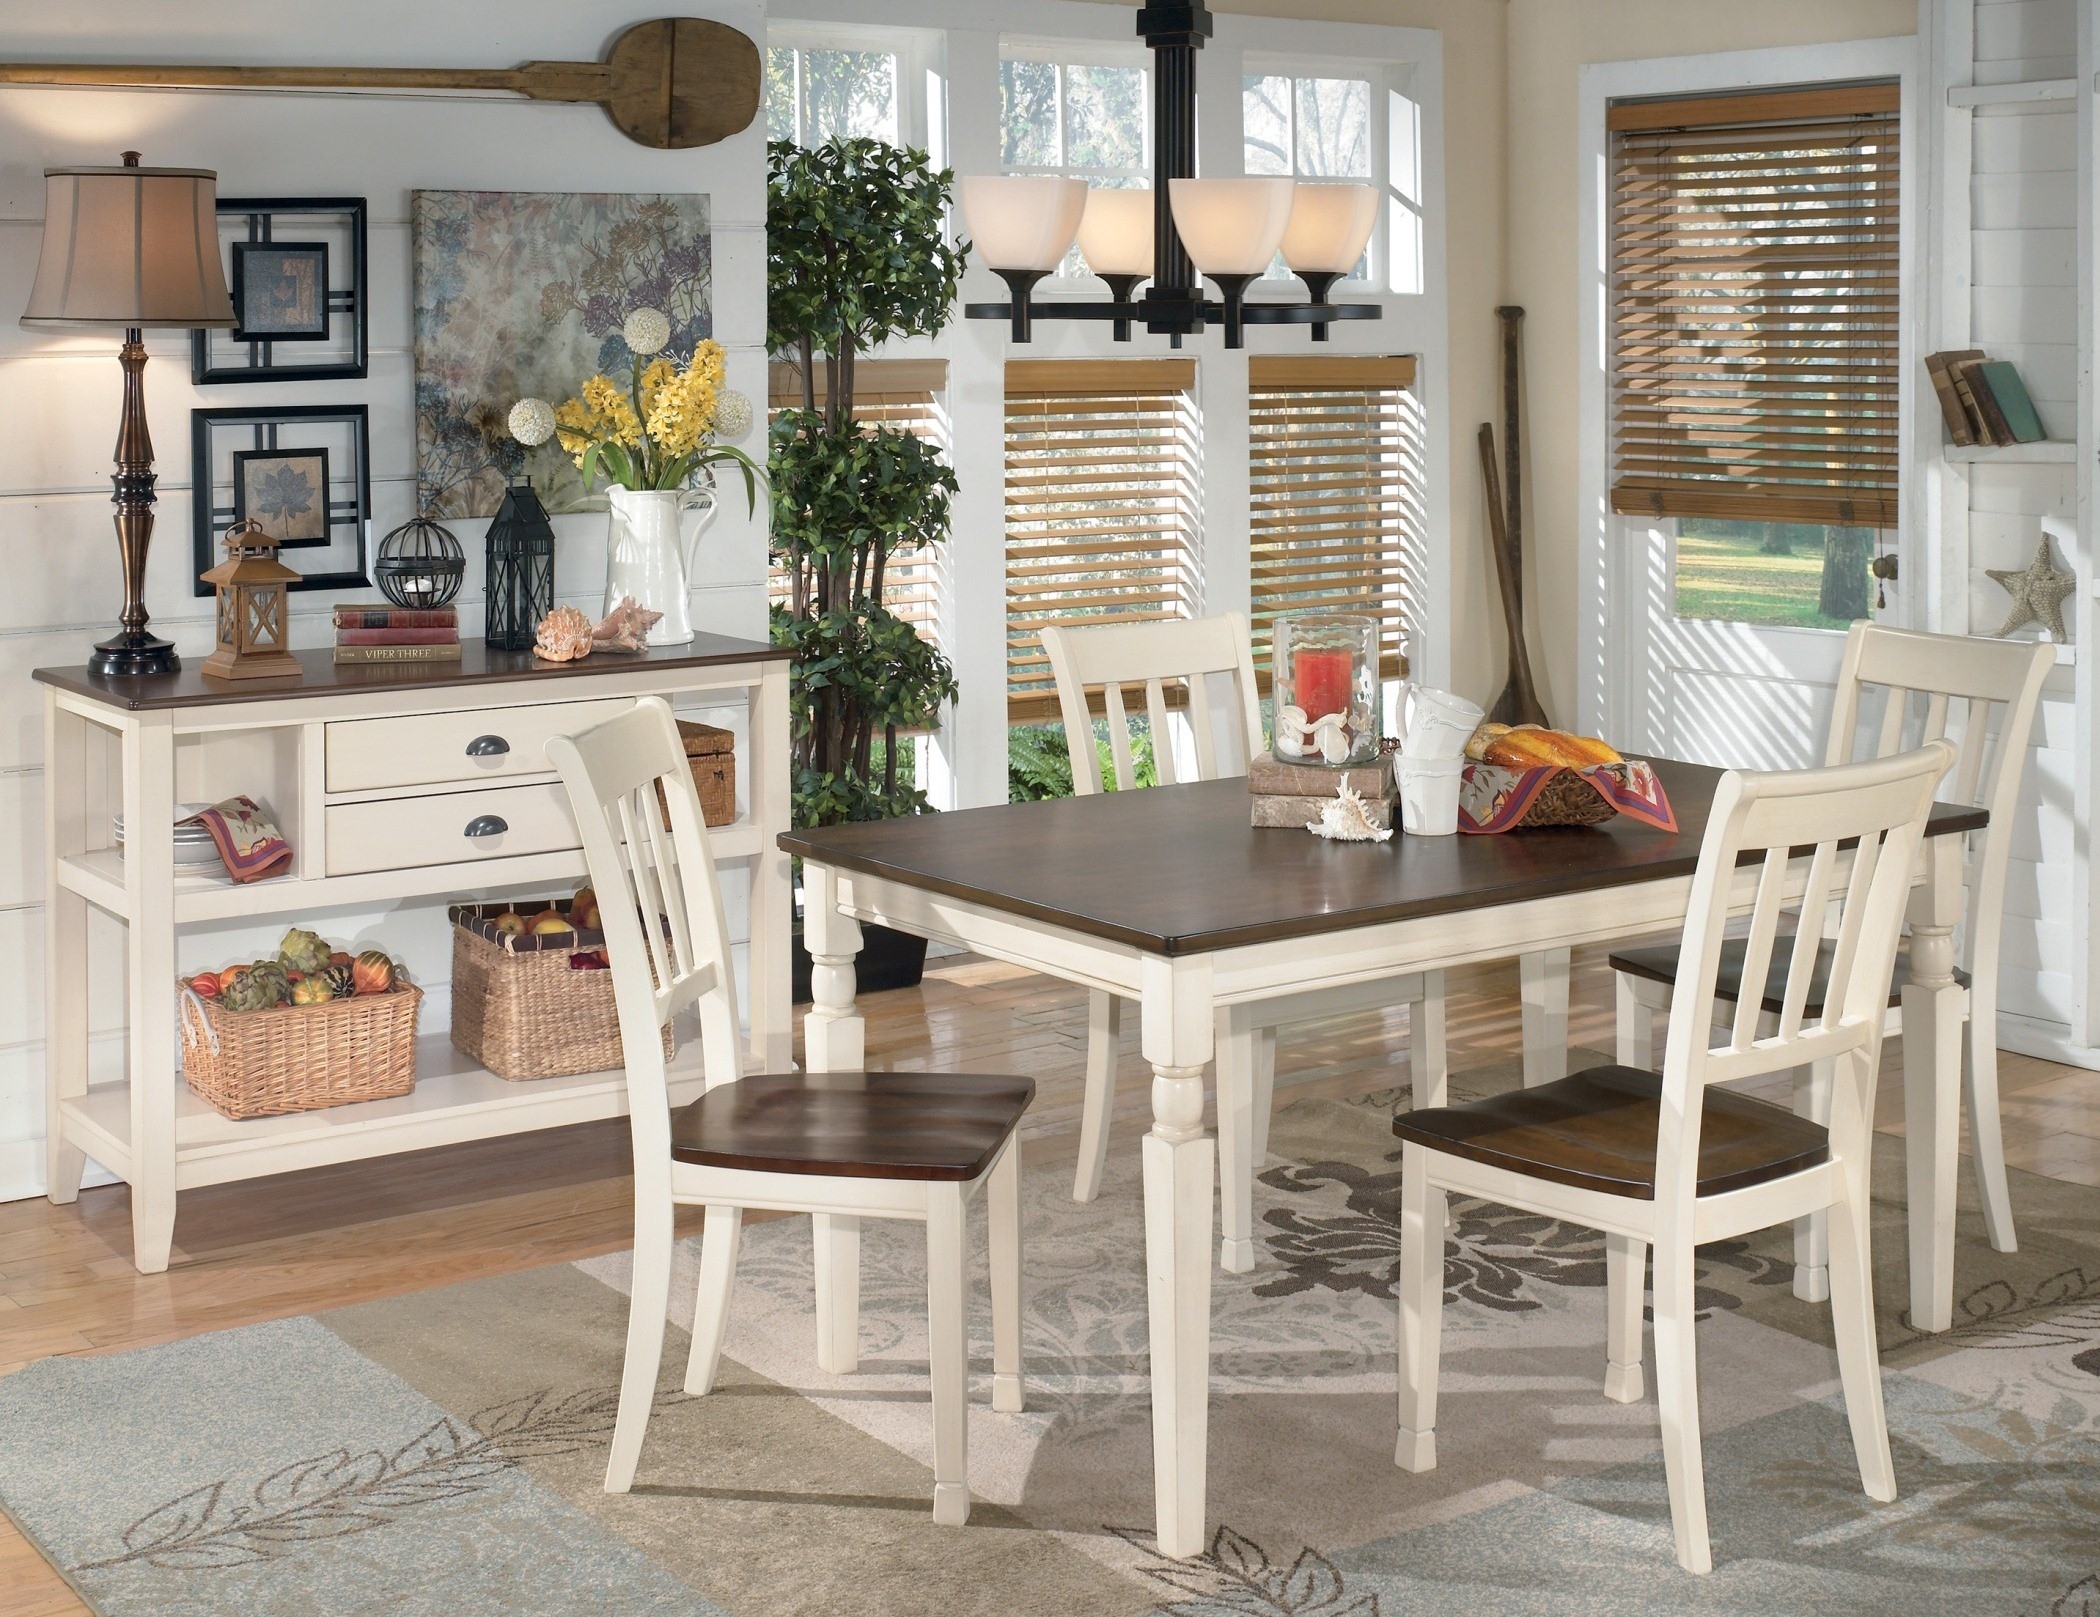 Whitesburg Rectangular Dining Room Set From Ashley D583